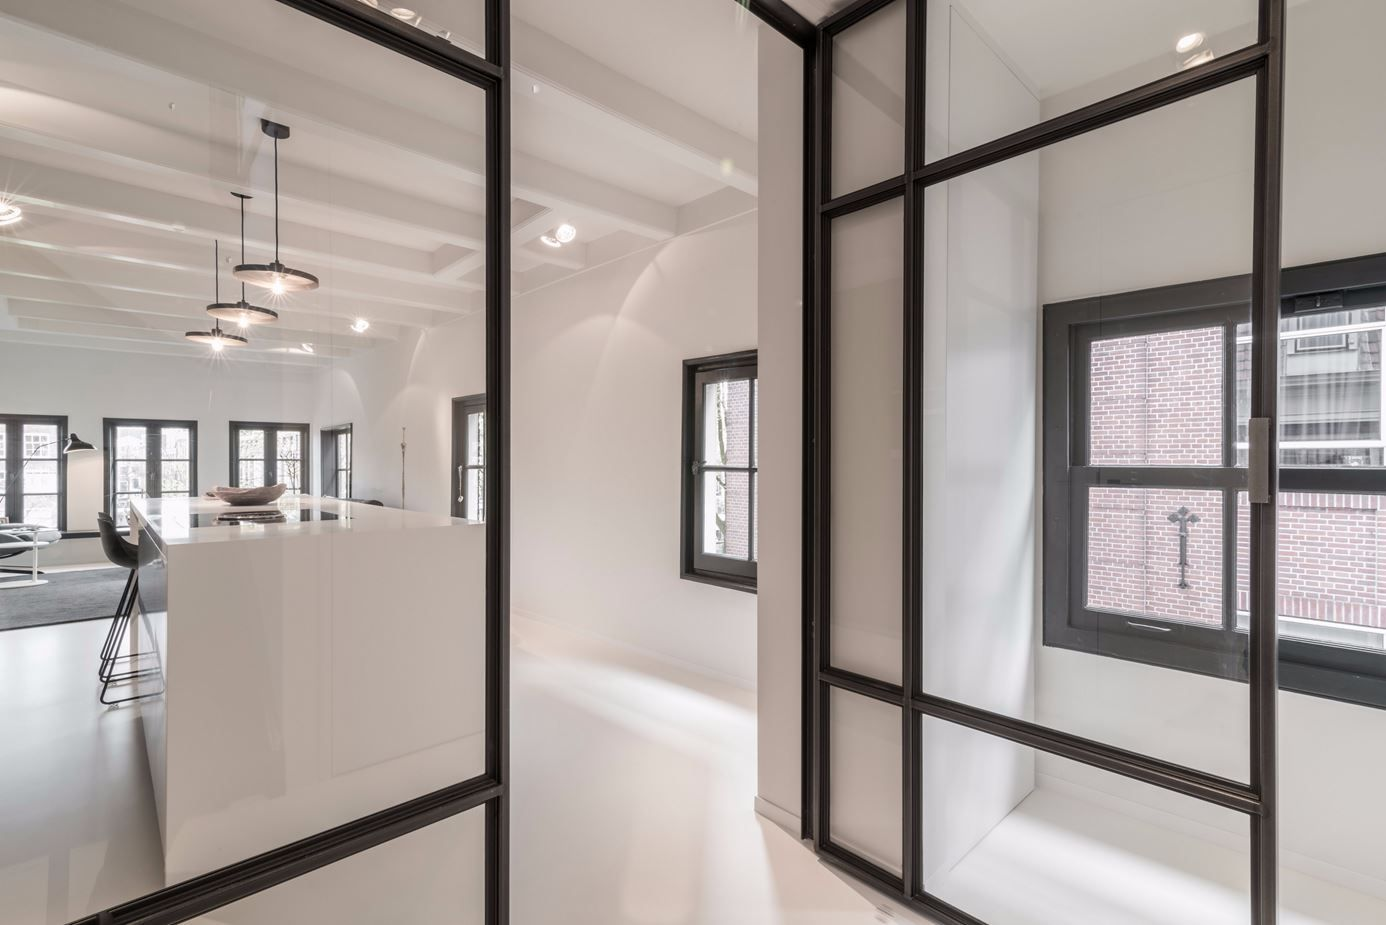 The glass doors allow extra light into the hall and stairwell.